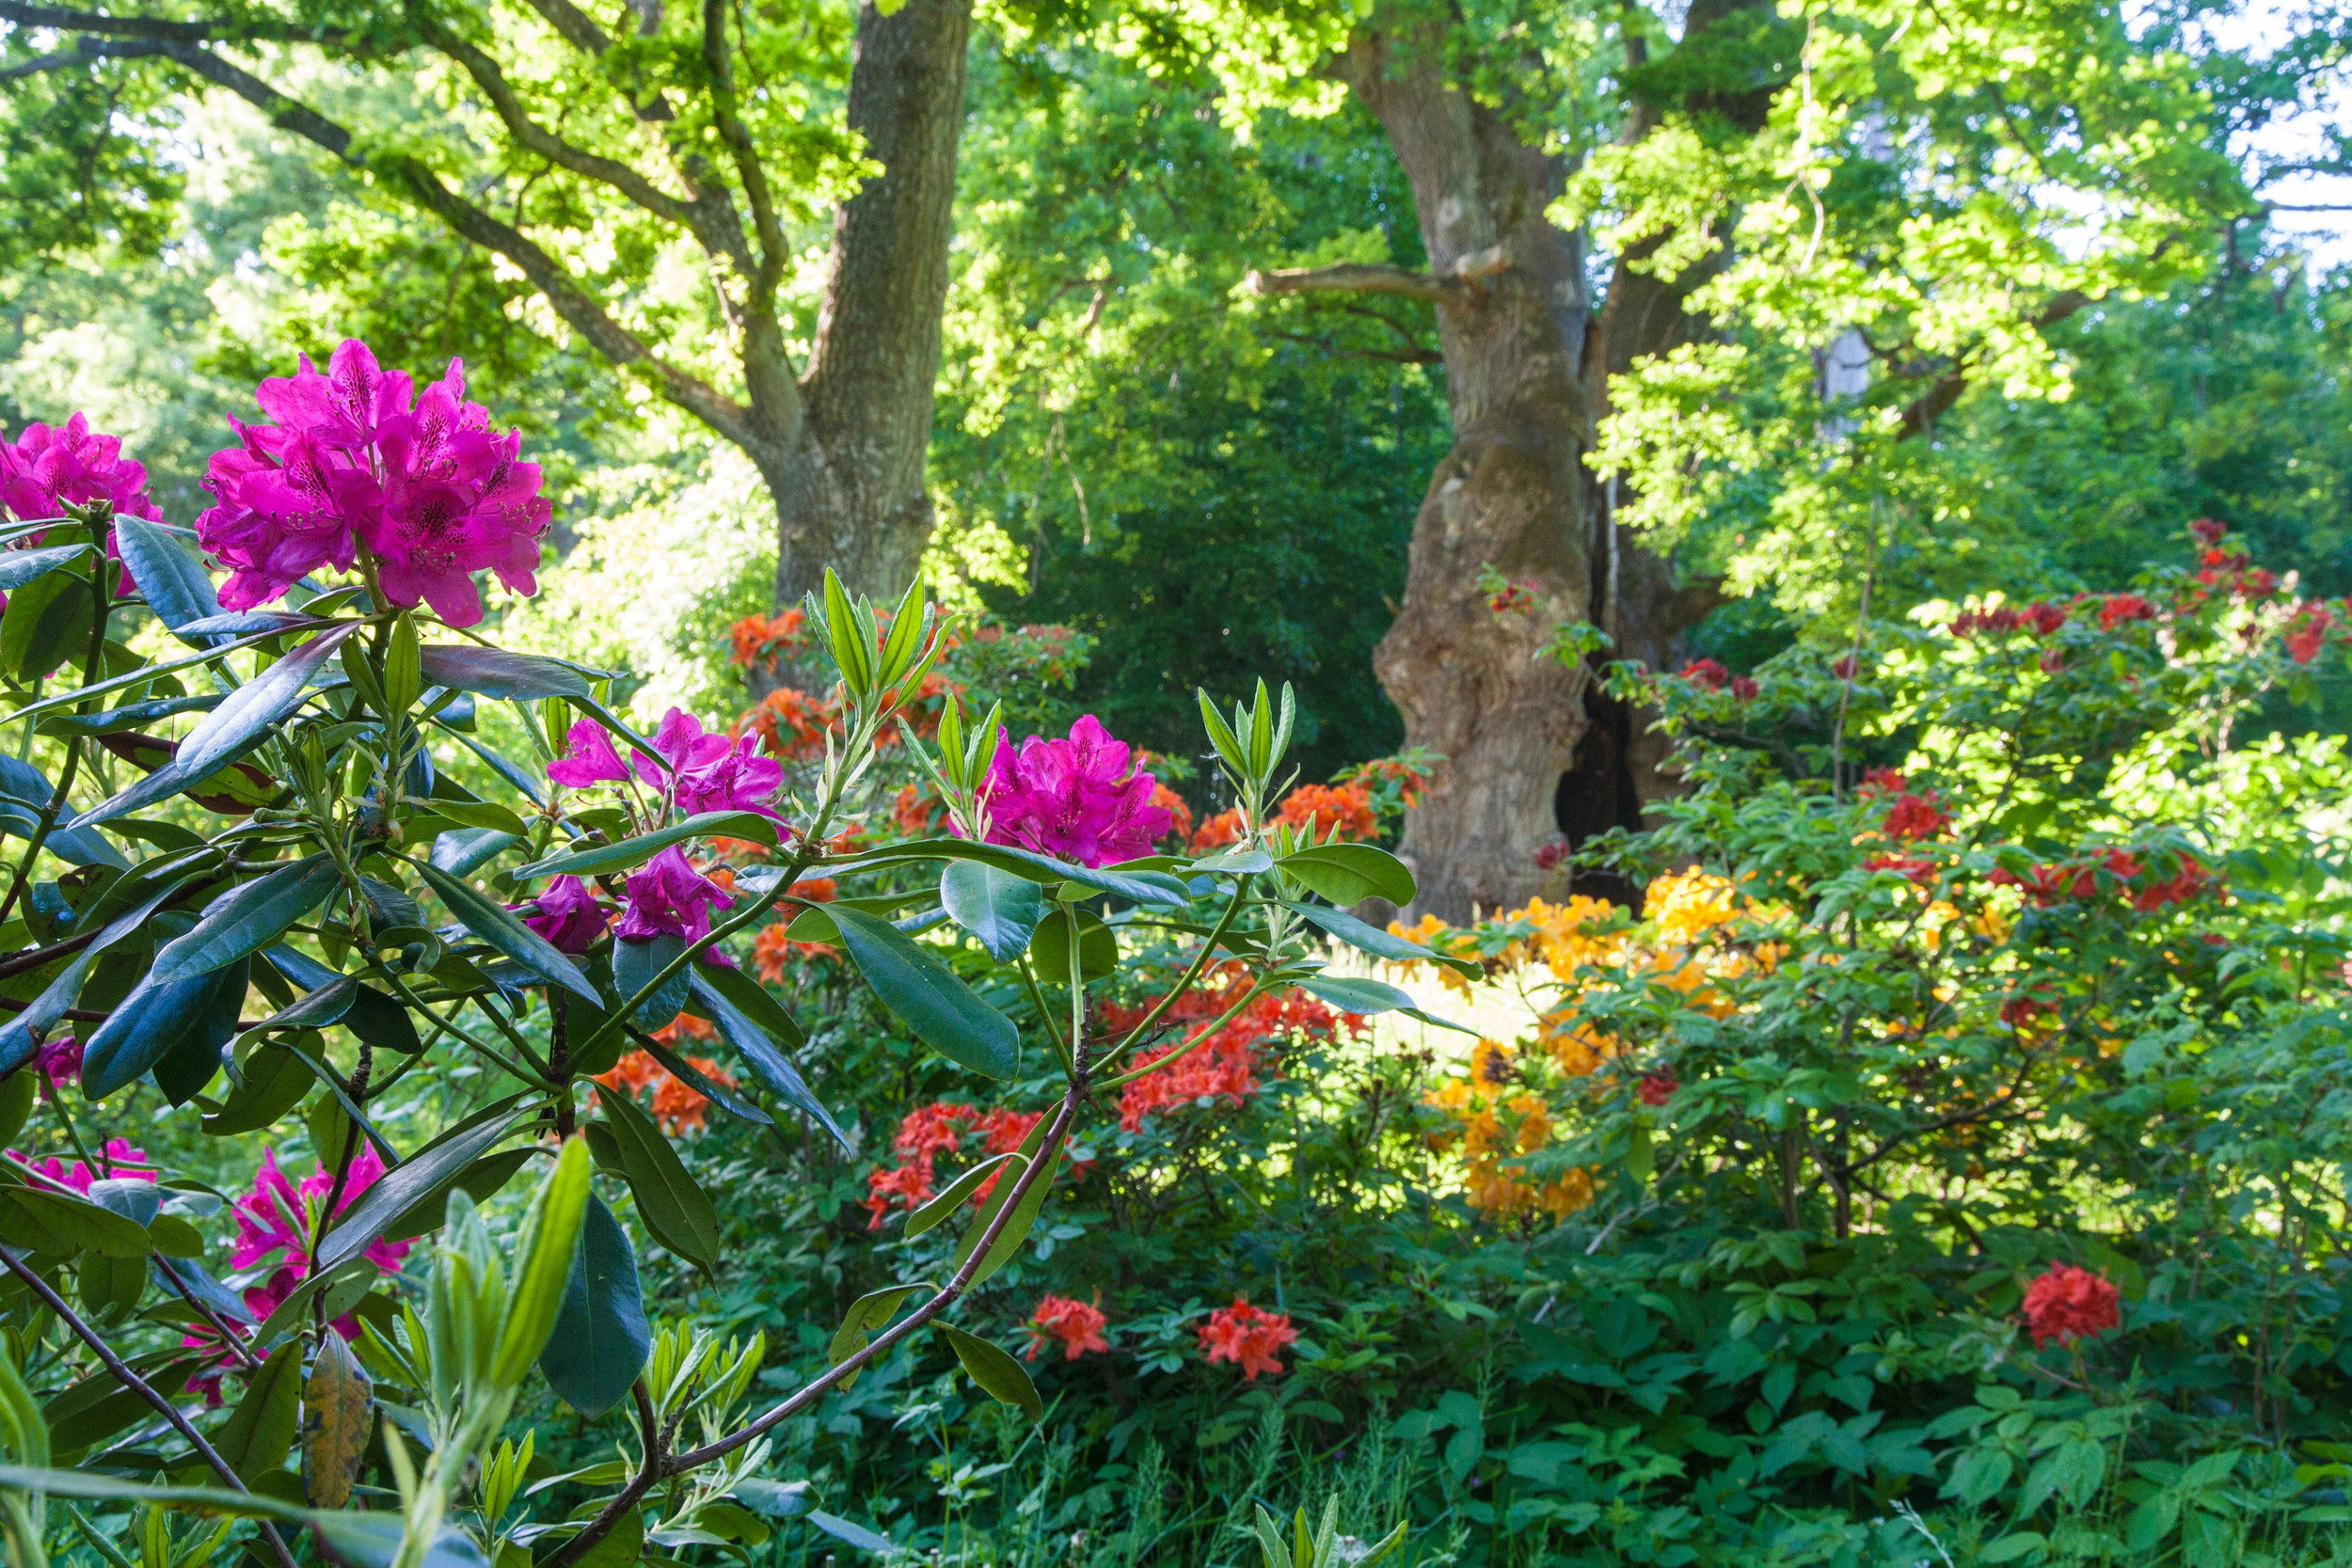 Rhododendron & azalea below the thousand-year old oak tree